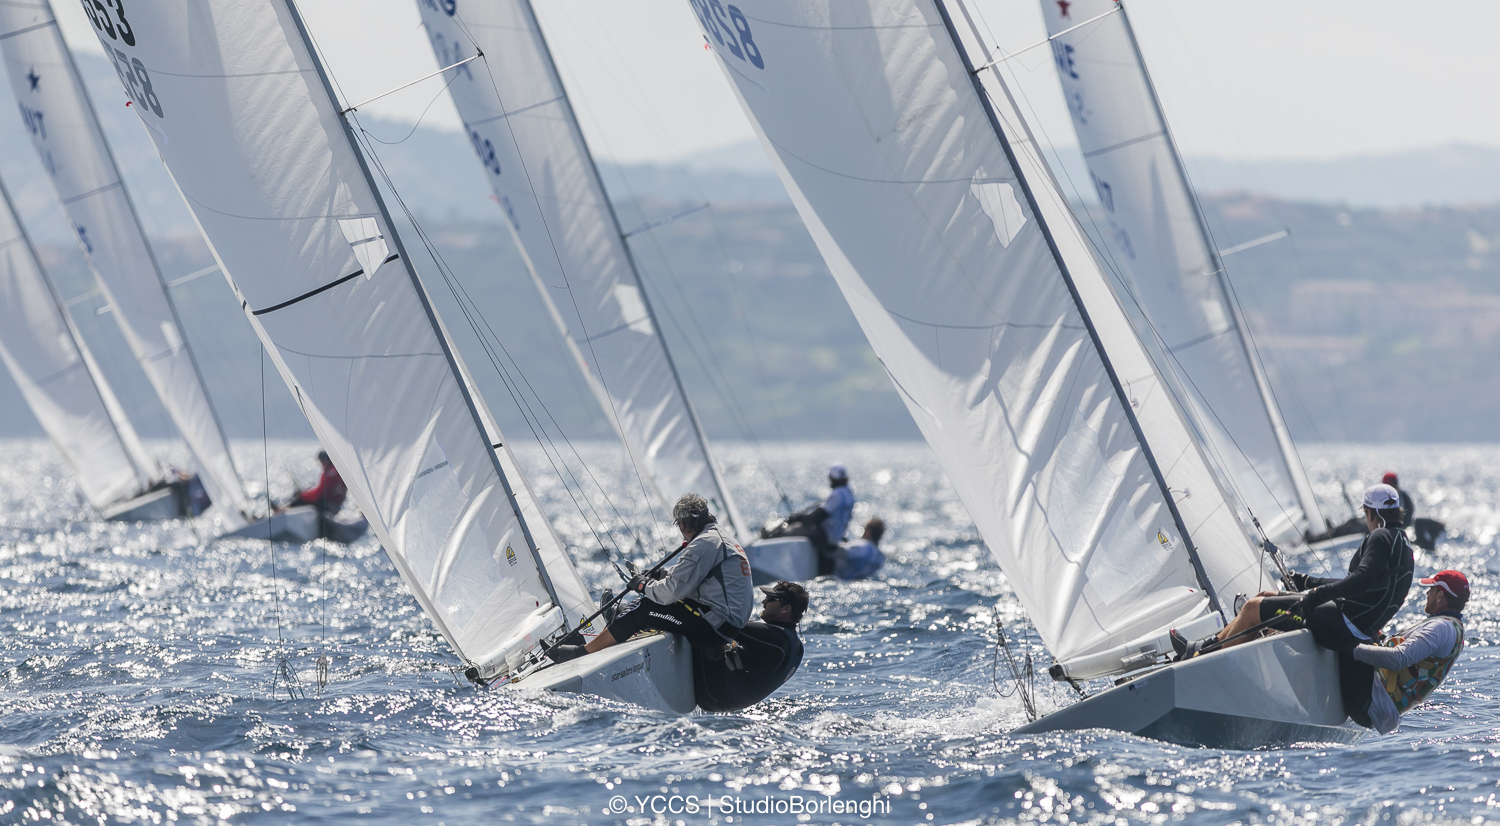 STAR WORLD CHAMPIONSHIP - FOTO DAY 6 ONLINE - NEWS - Yacht Club Costa Smeralda